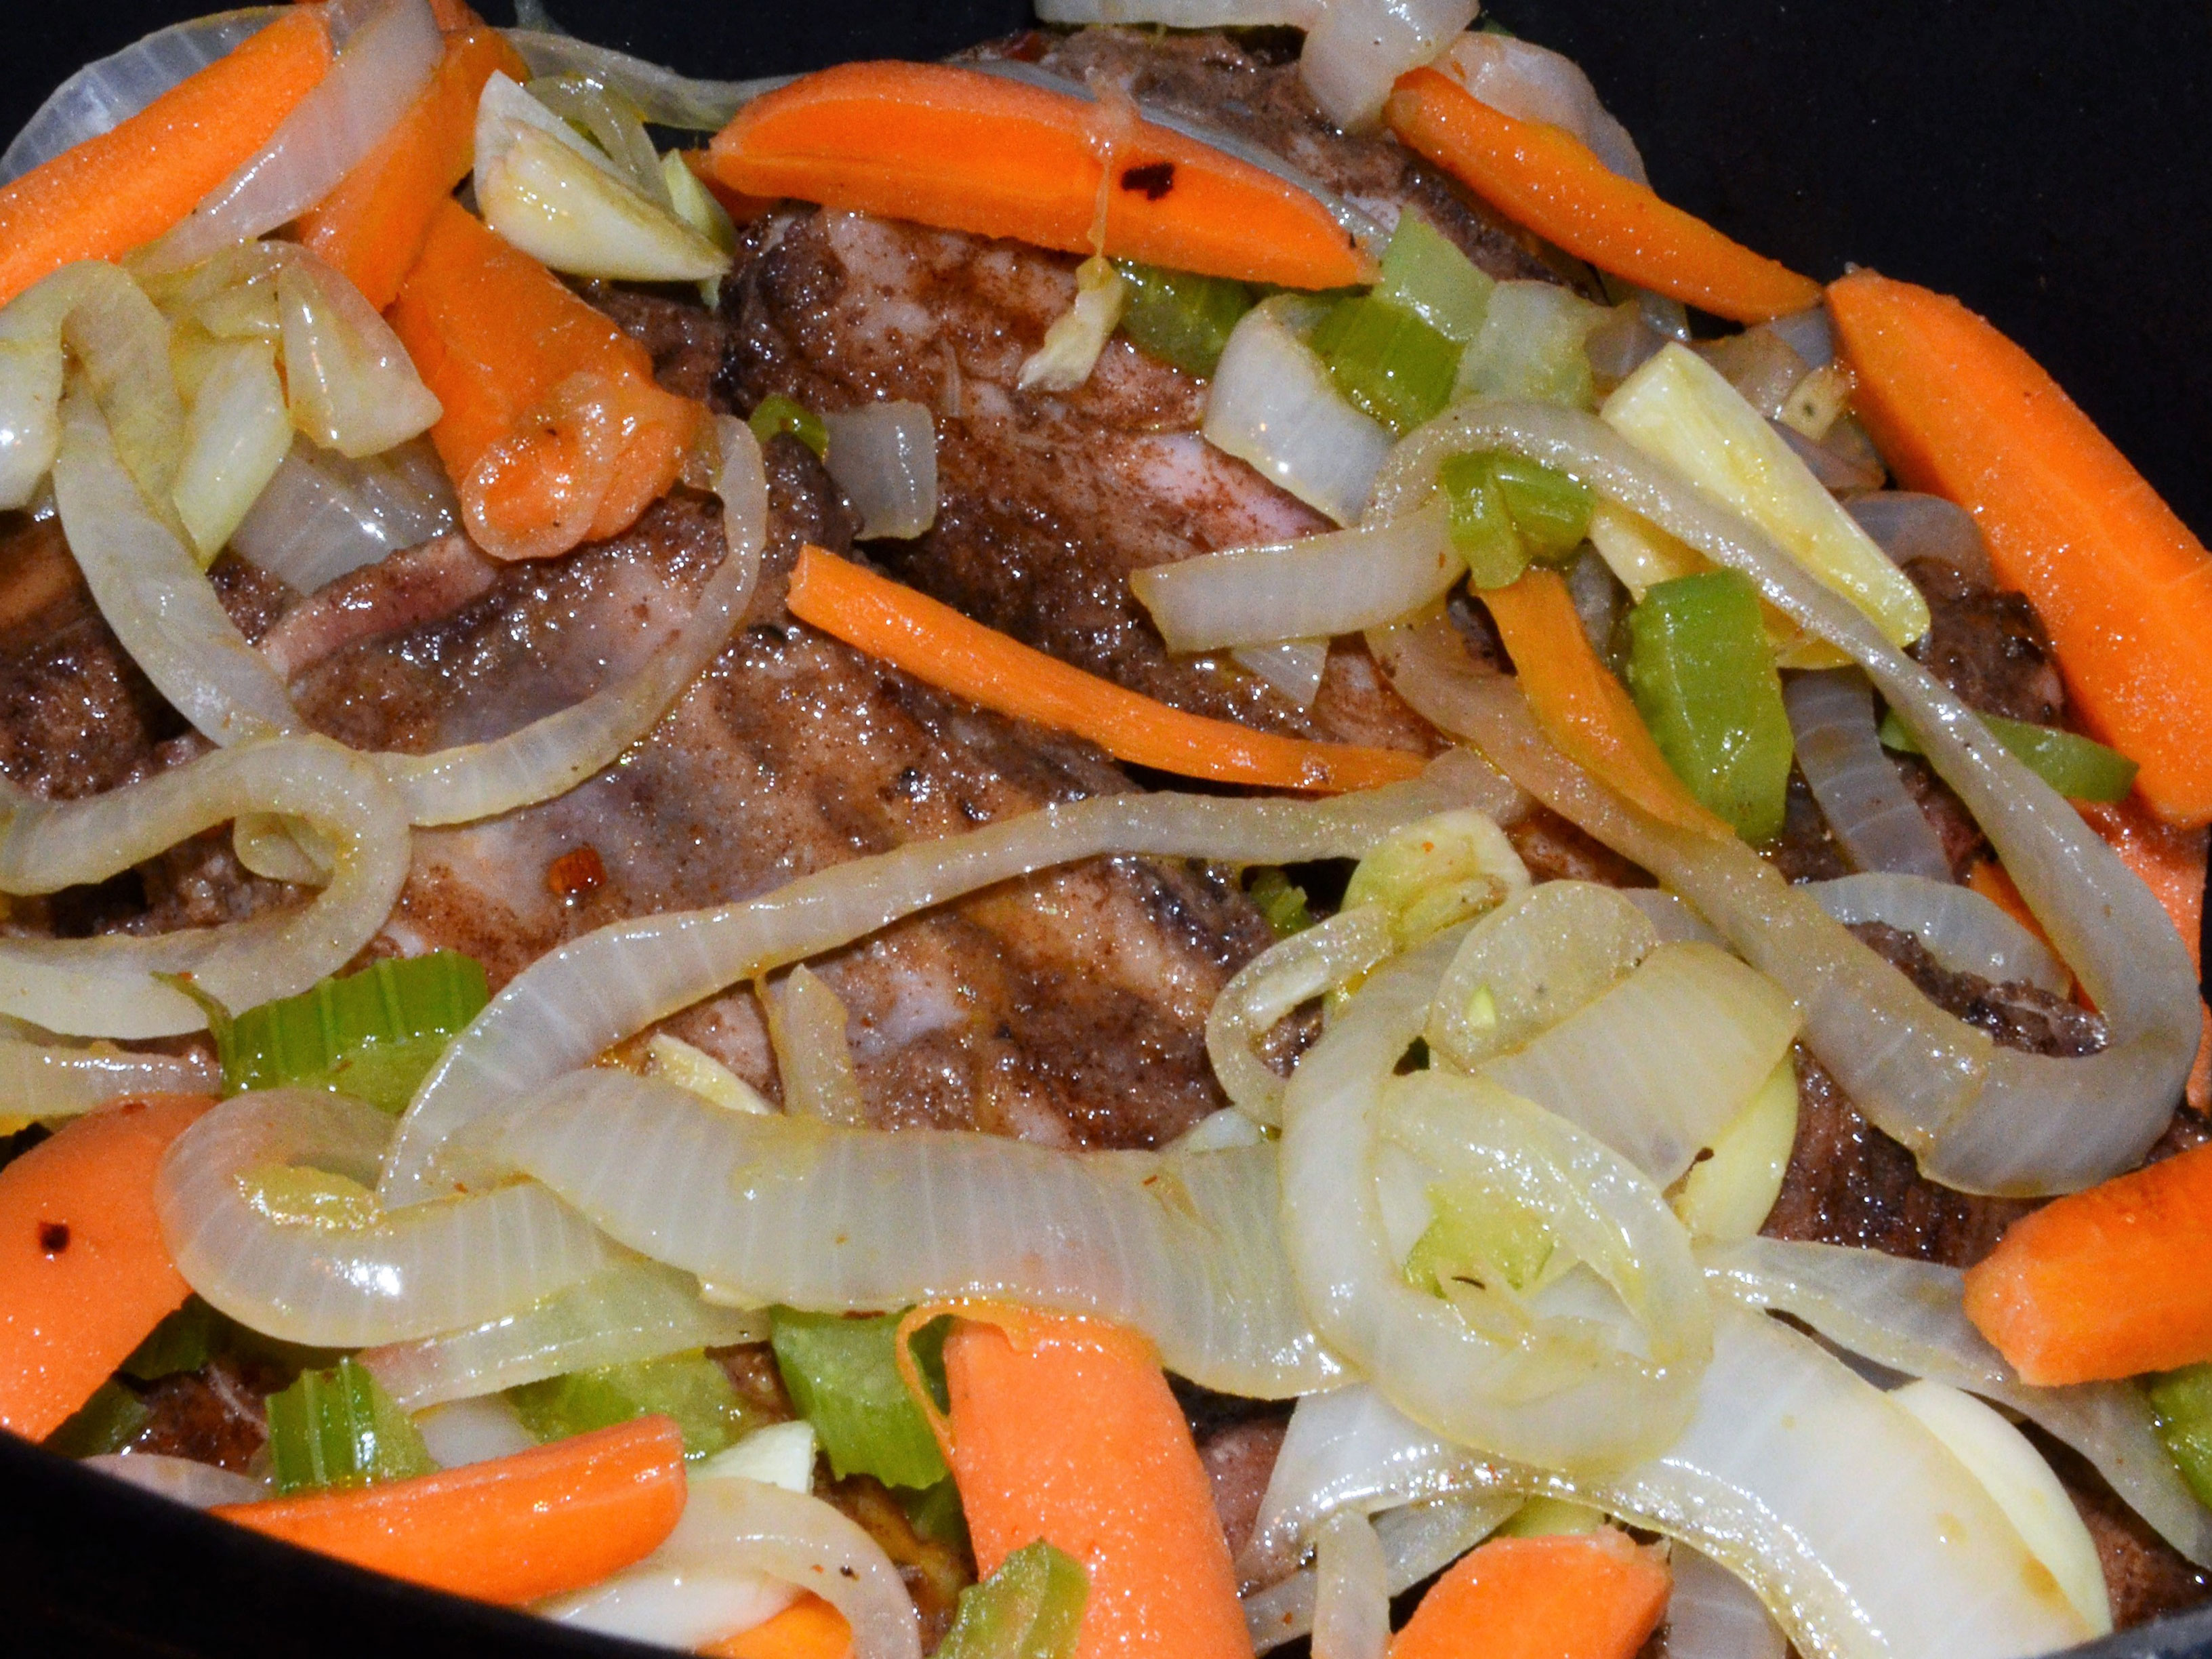 Short ribs with vegetables